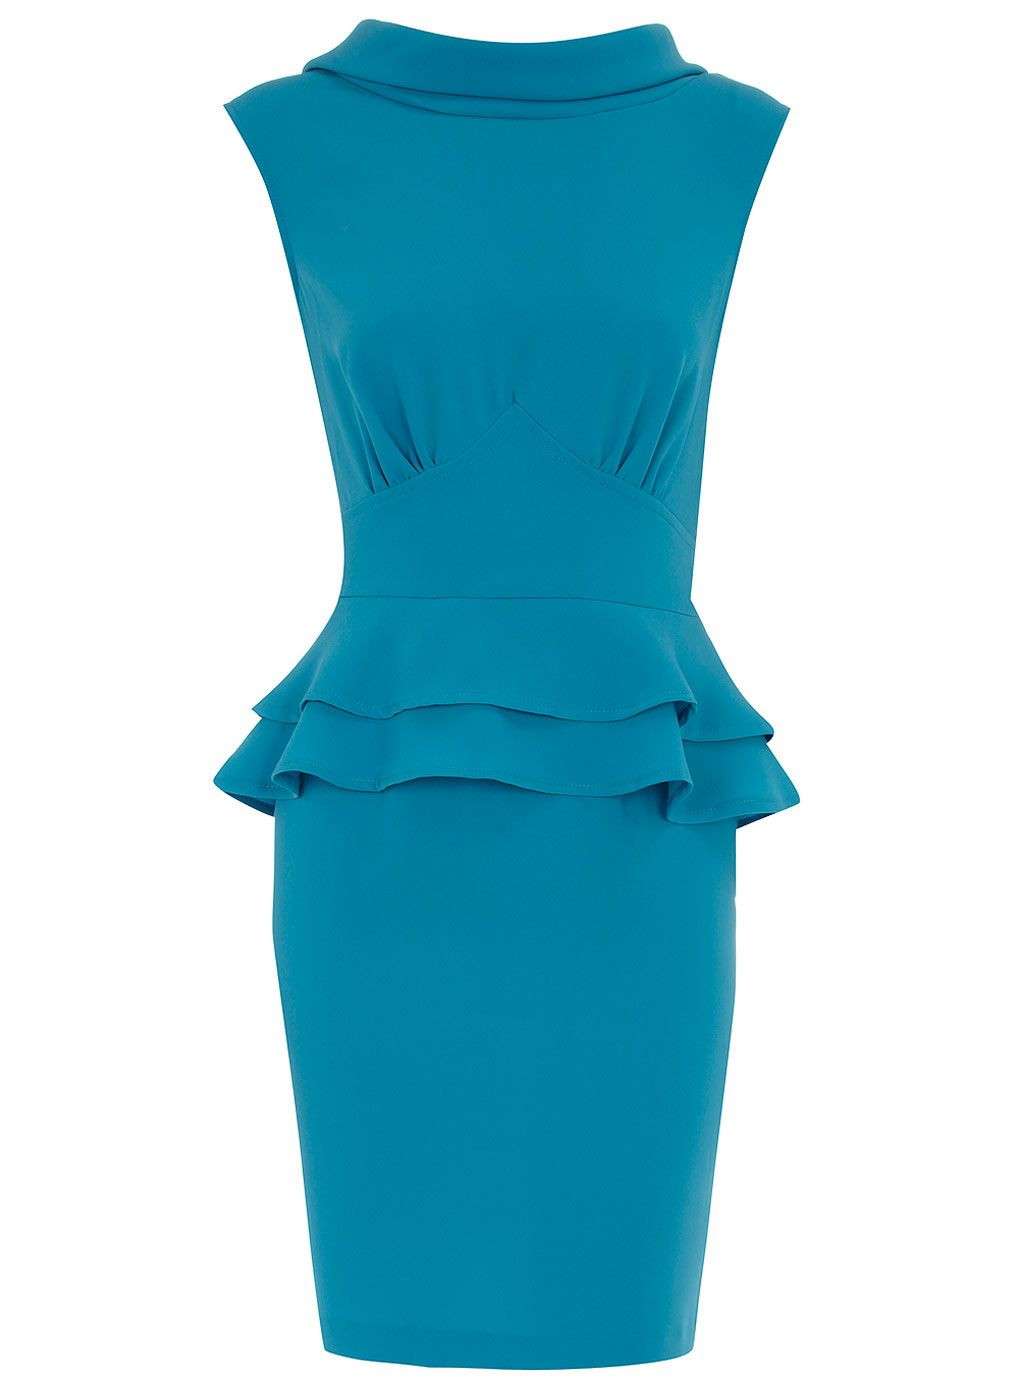 I want a peplum dress